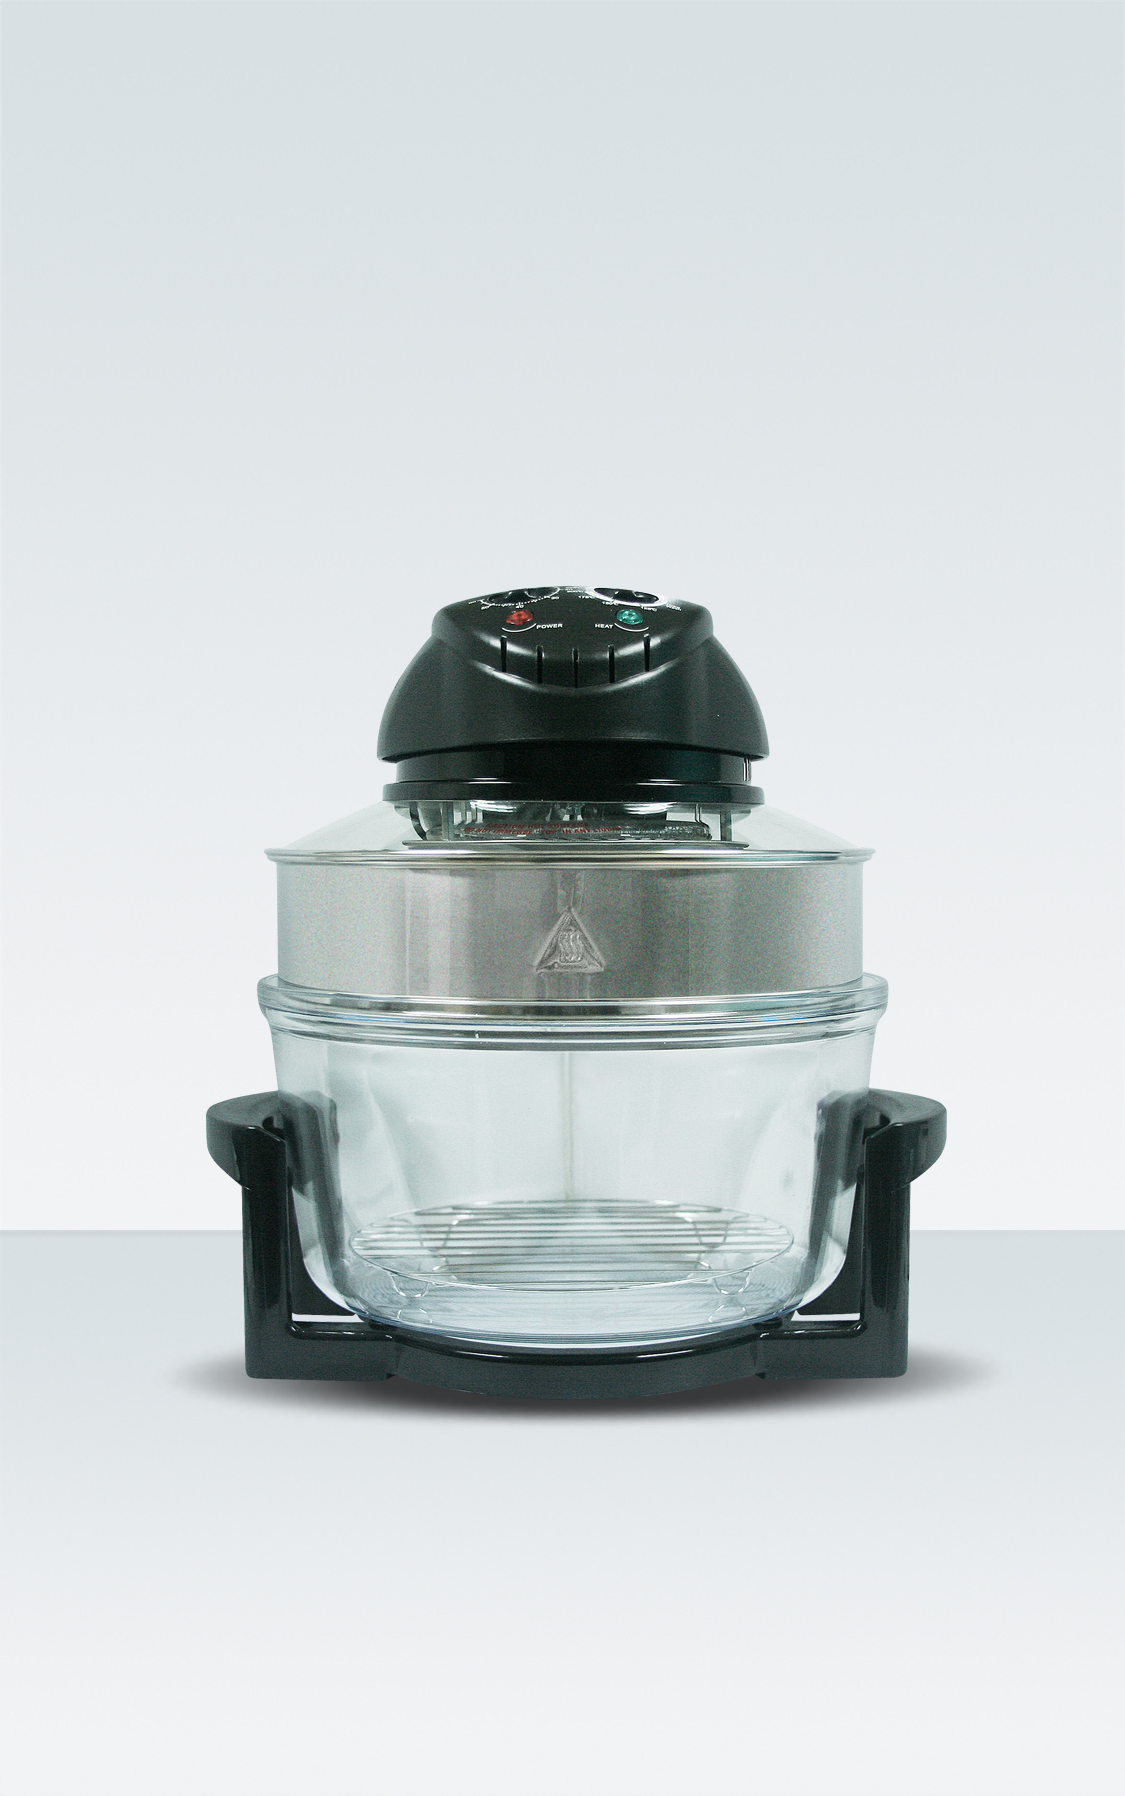 TURBO BROILER HALOGEN OVEN WITH EXTENDER